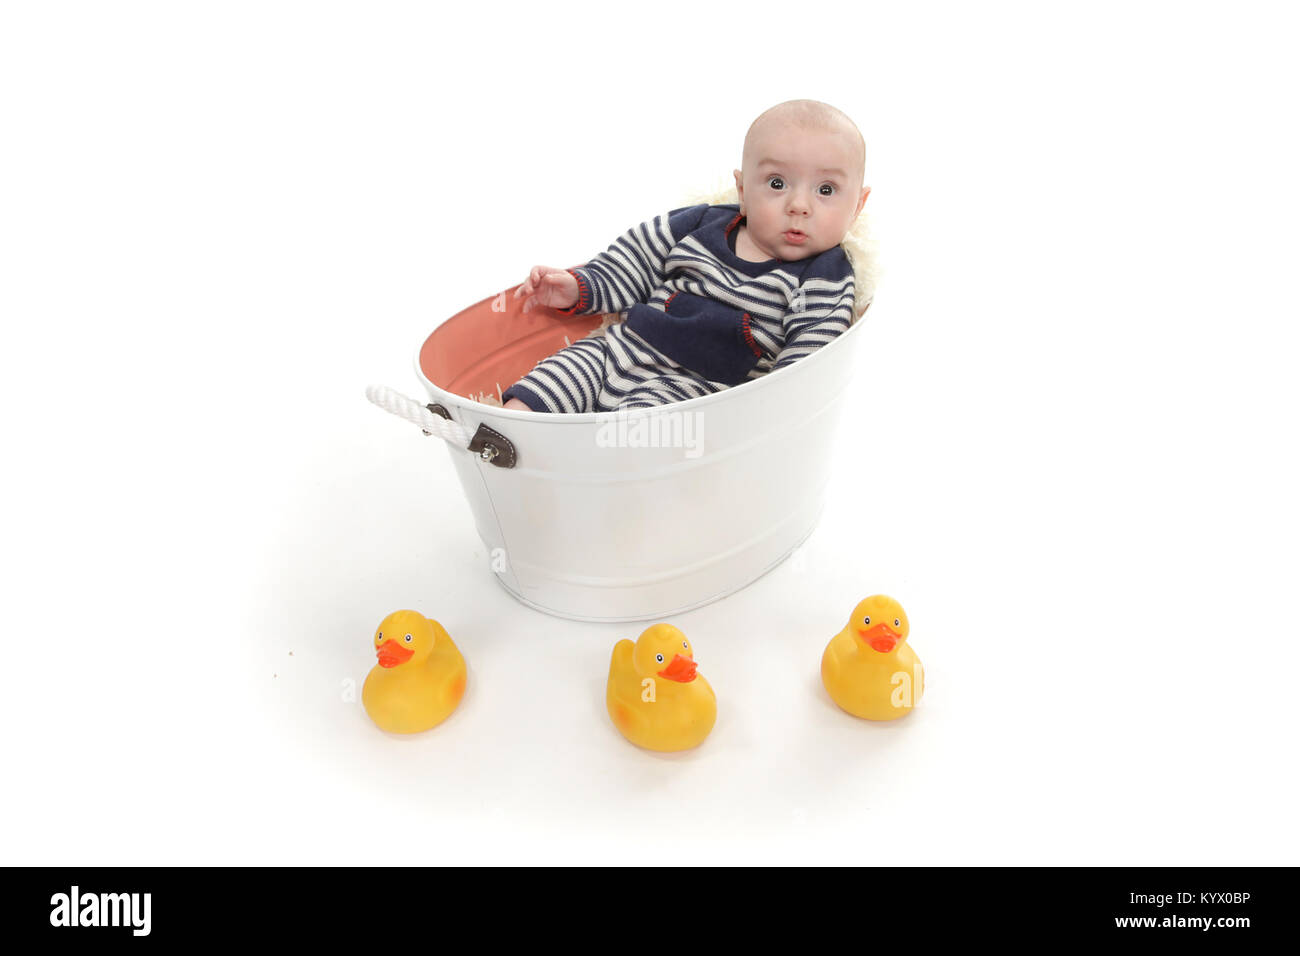 12 week old baby boy exploring in tin bath tub with rubber ducks - Stock Image